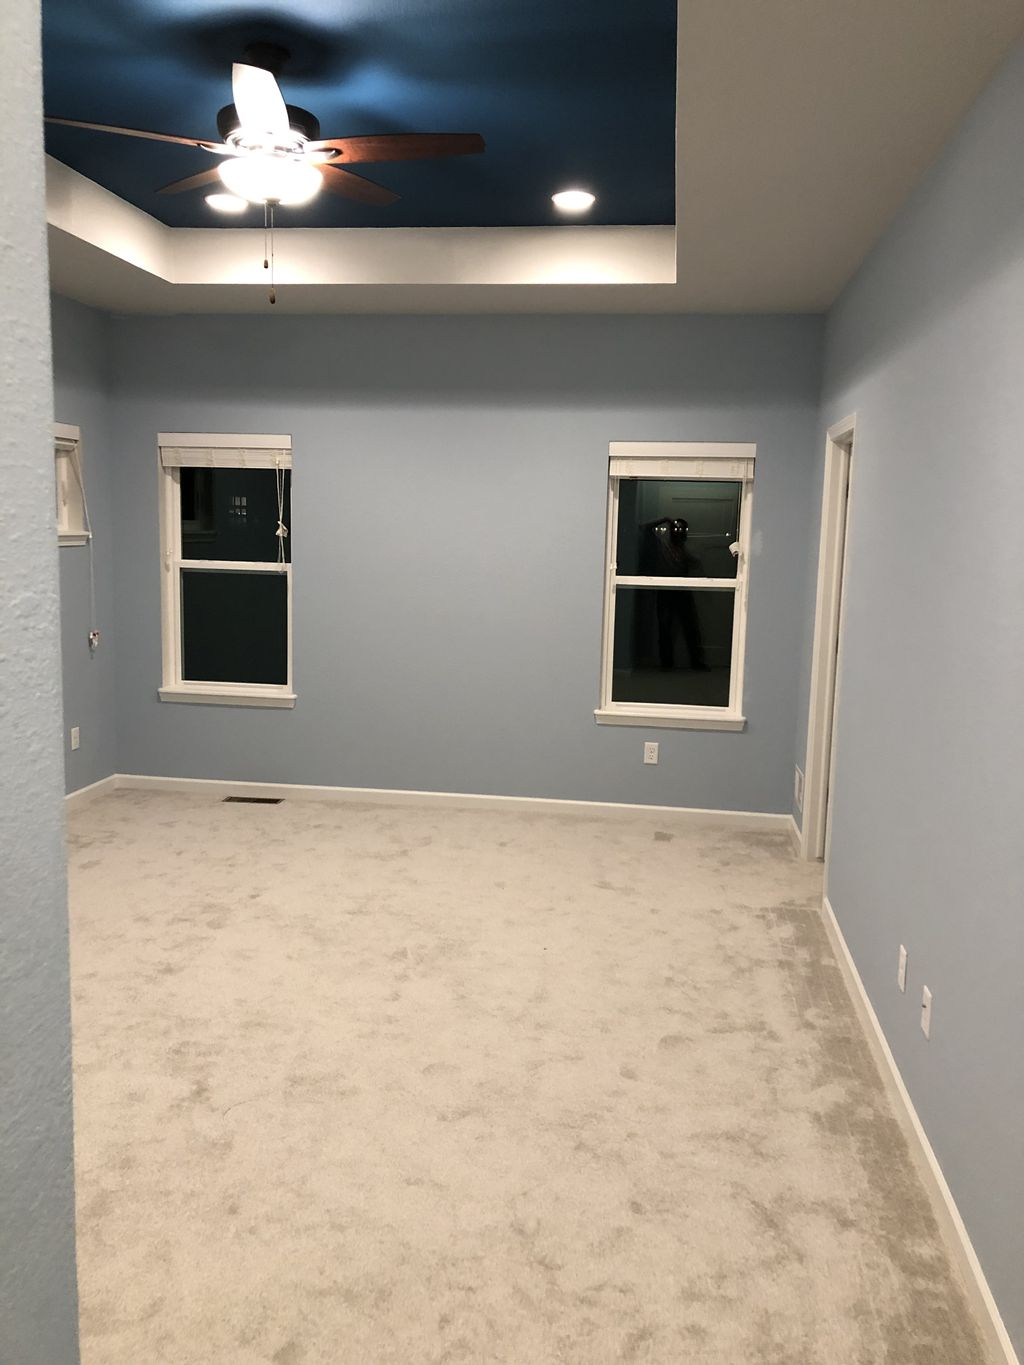 New construction, three rooms and two tray ceilings